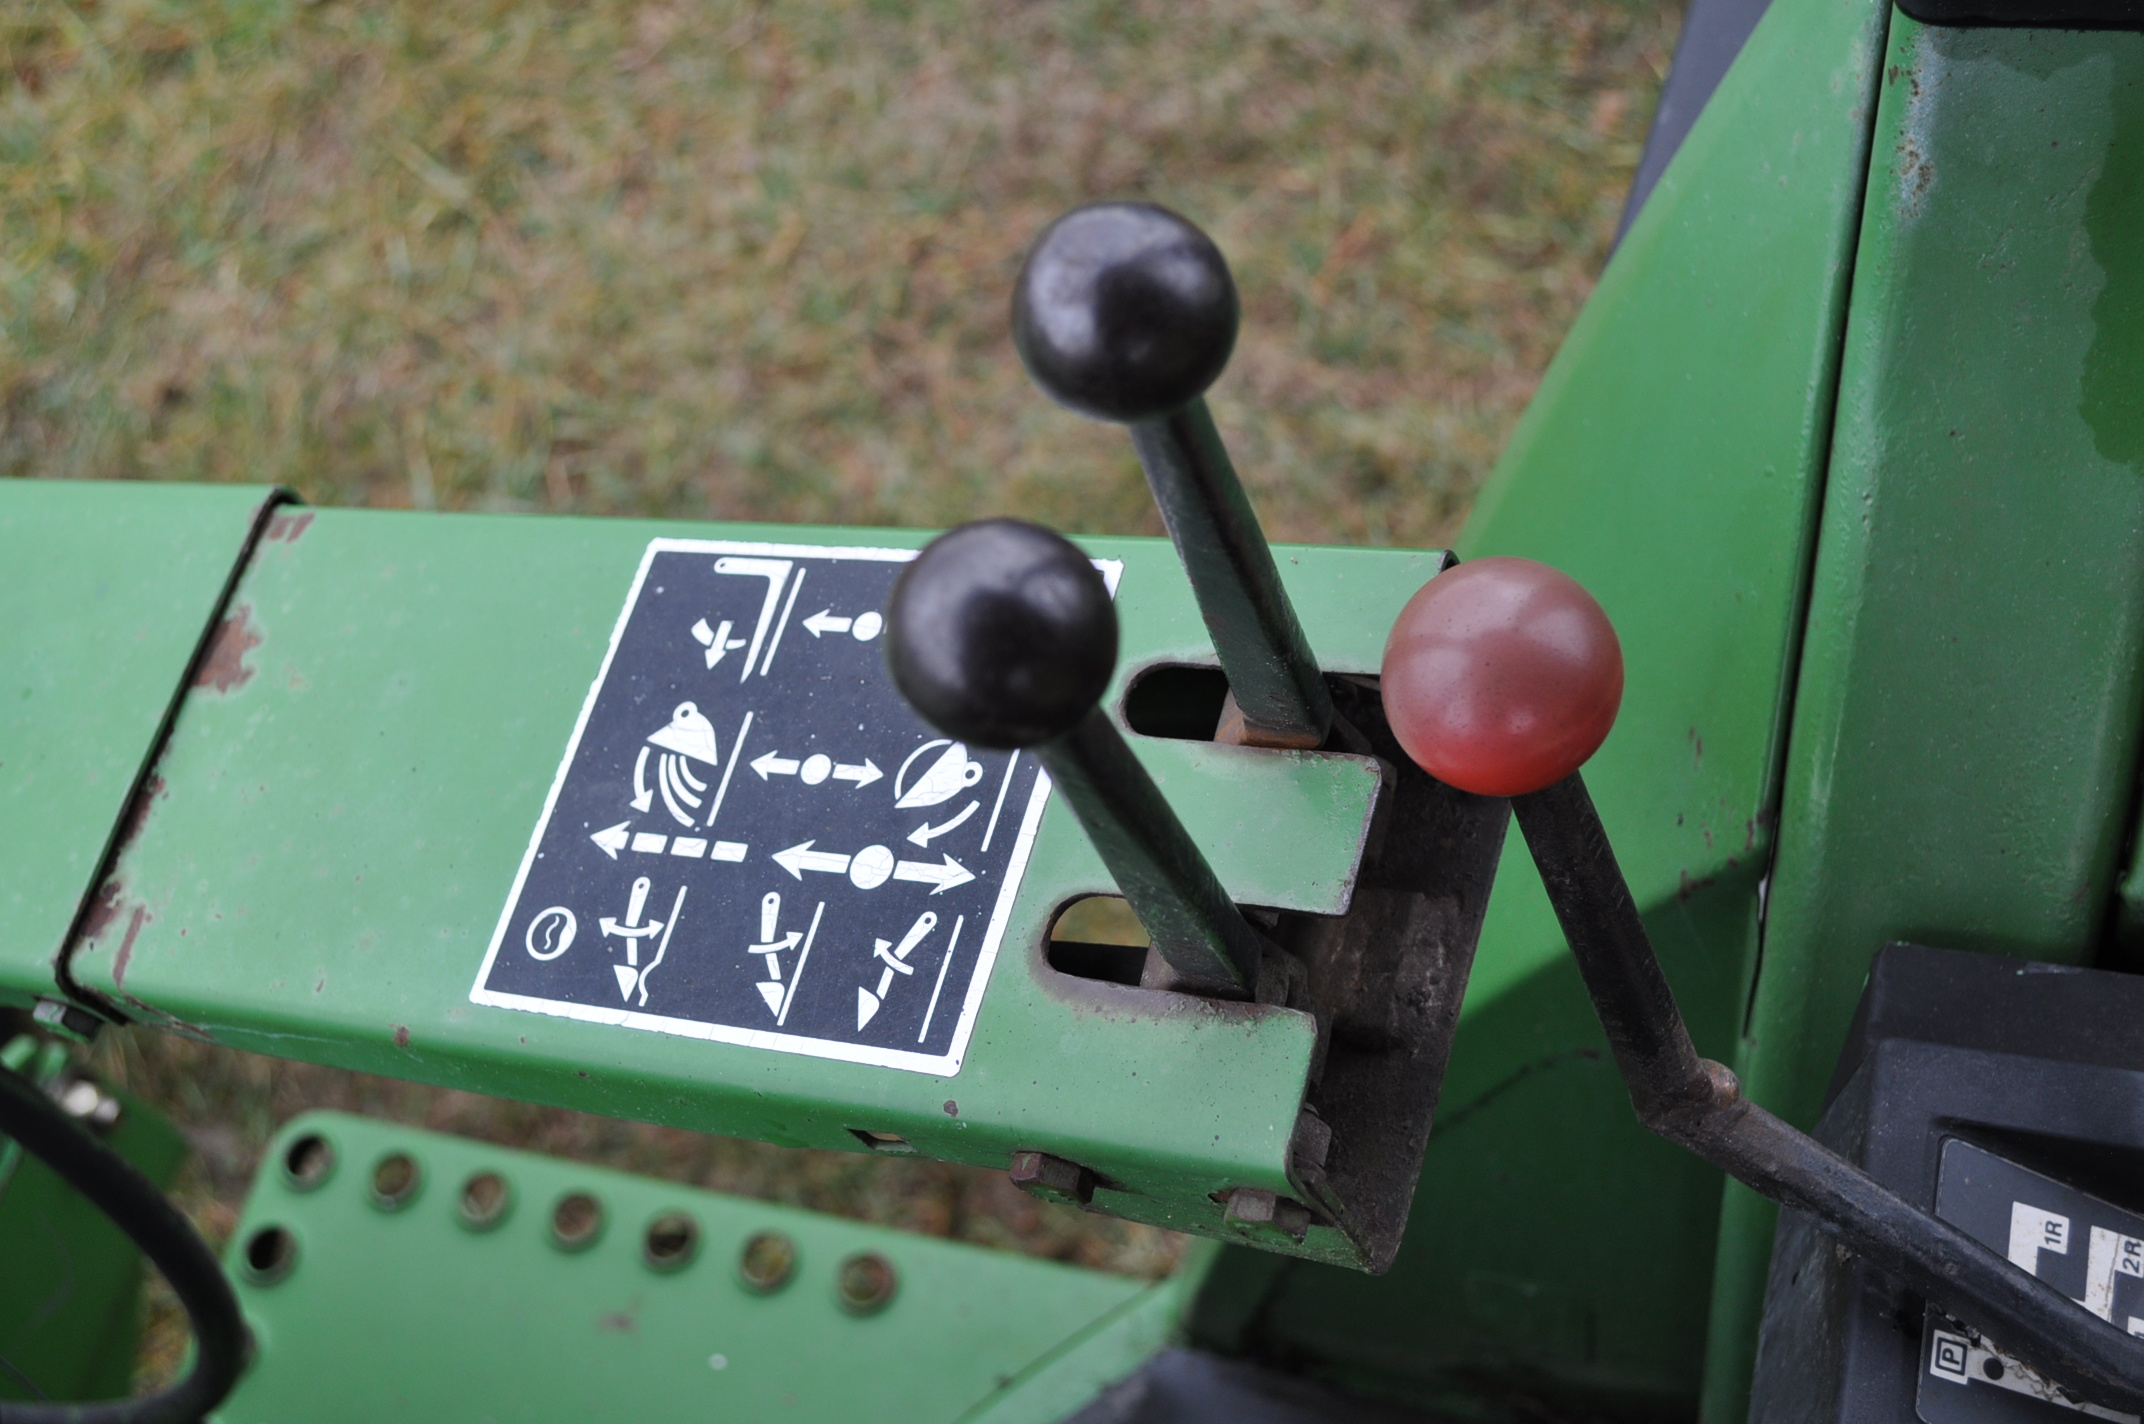 John Deere 4030 tractor, diesel, 18.4-34 rear duals, rear wts, 9.5-15 front, 4-post canopy, Syncro, - Image 21 of 26